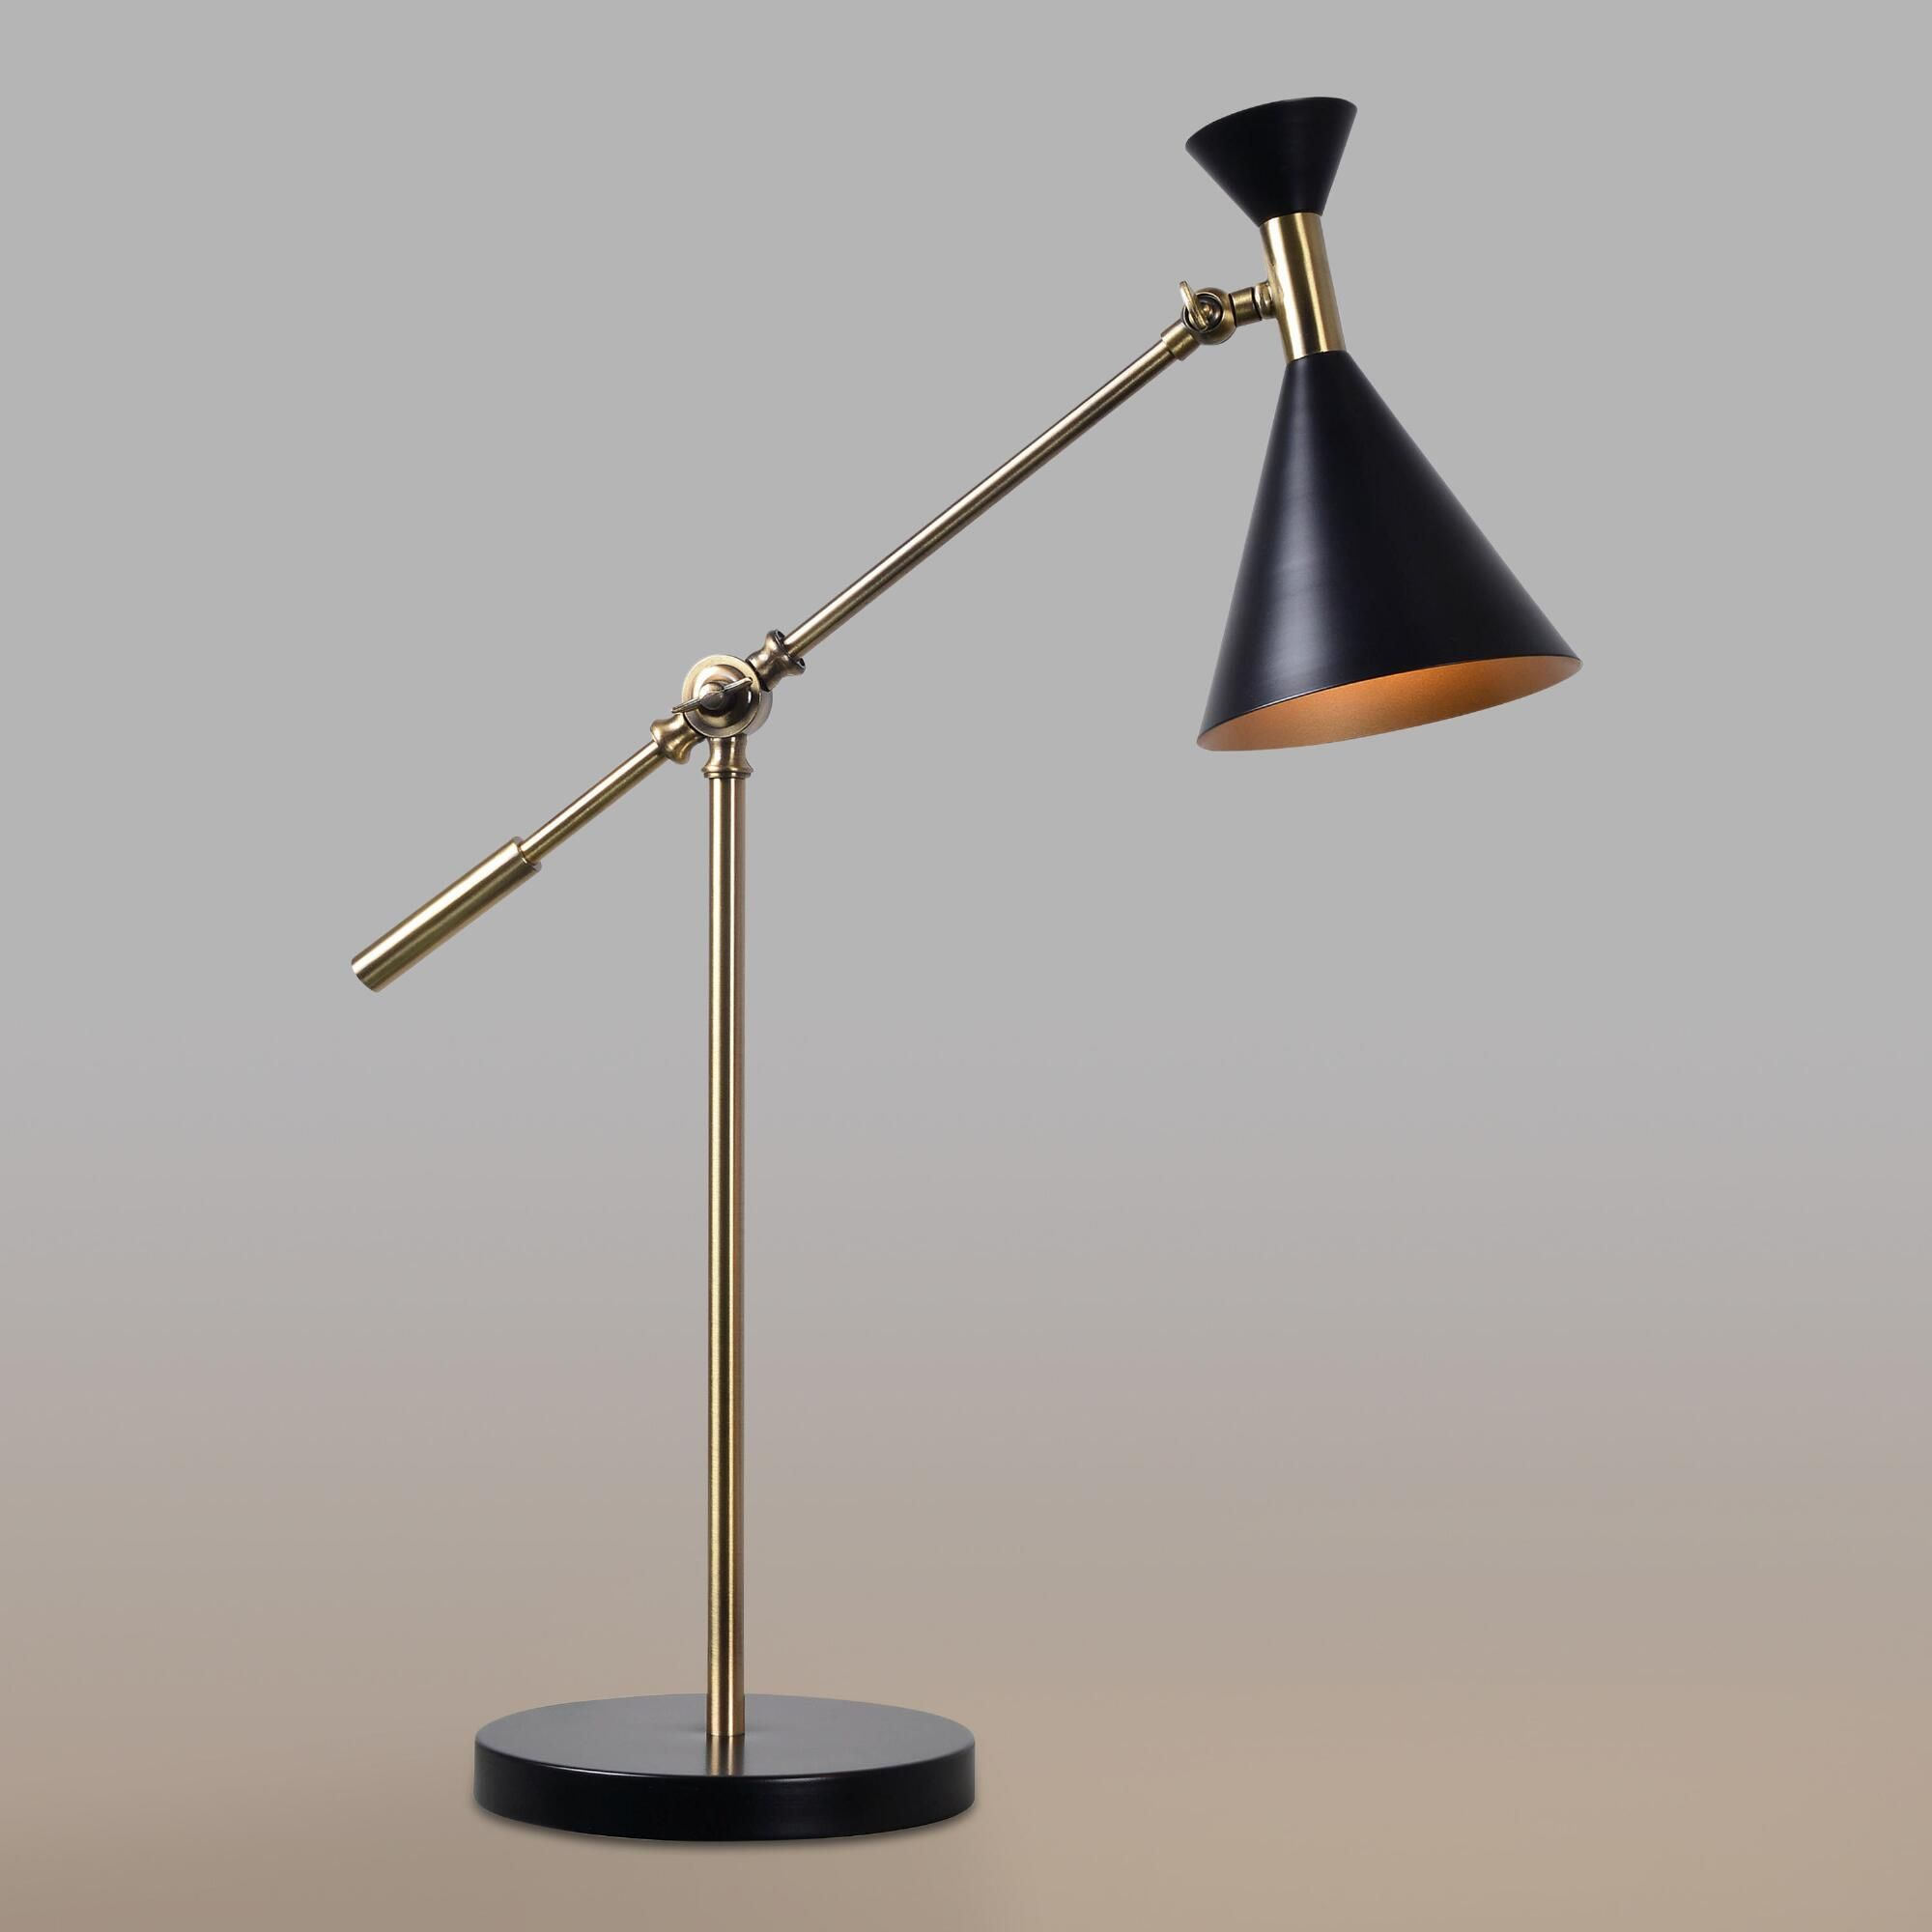 Wondrous Antique Brass Mid Century Adjustable Melvin Task Desk Lamp Download Free Architecture Designs Viewormadebymaigaardcom